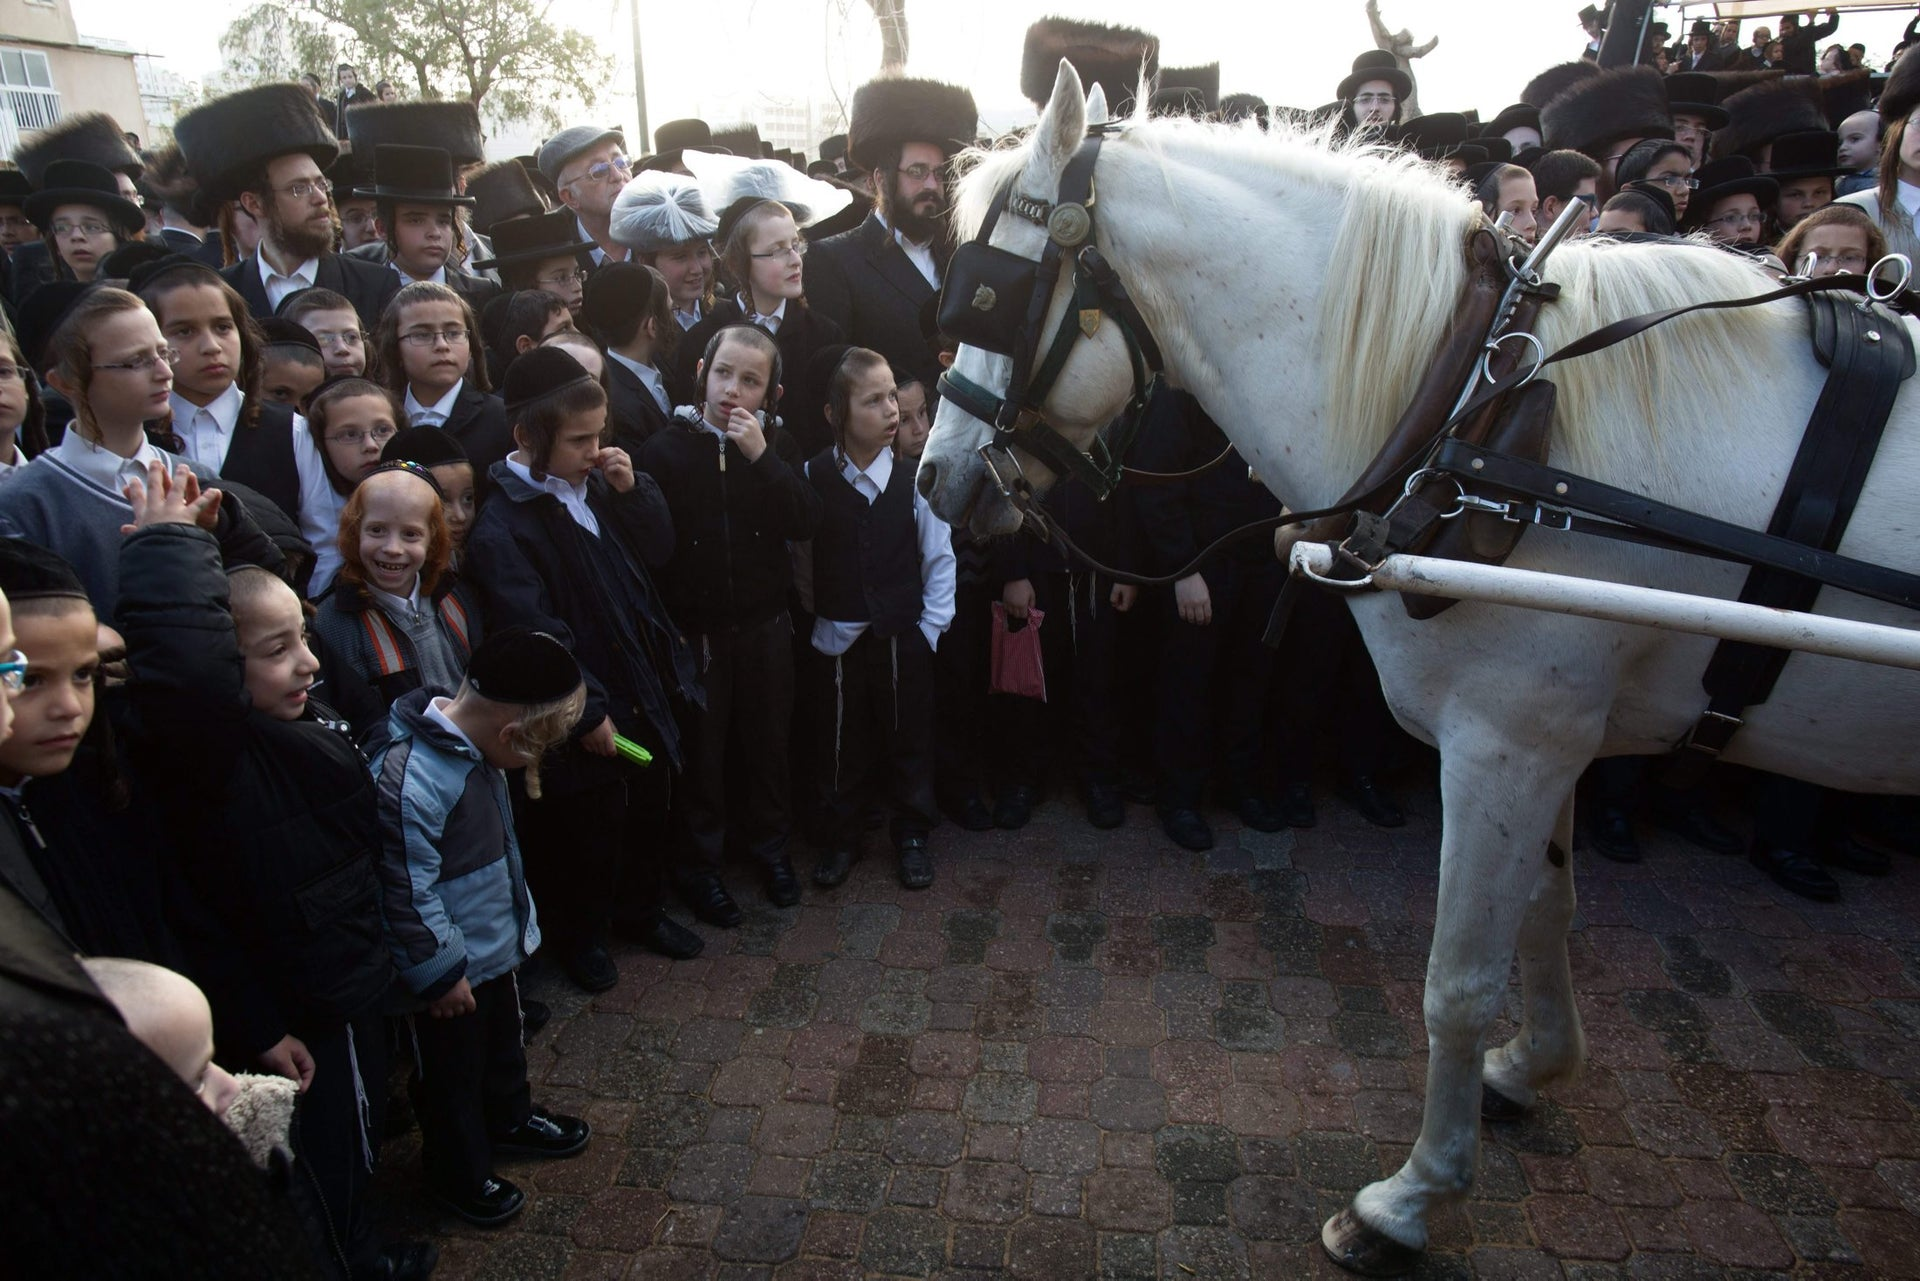 Ultra-Orthodox Jewish children stand next to a horse-drawn carriage carrying Natan Meir Neta Hilbershtam, the groom from the Tzanz Hasidic dynasty, before his wedding with Parowol Mirel Lamber from the Toldos Avrohon Yitzchok Hasidic dynasty, on March 15, 2016, in the Israeli central city of Netanya.